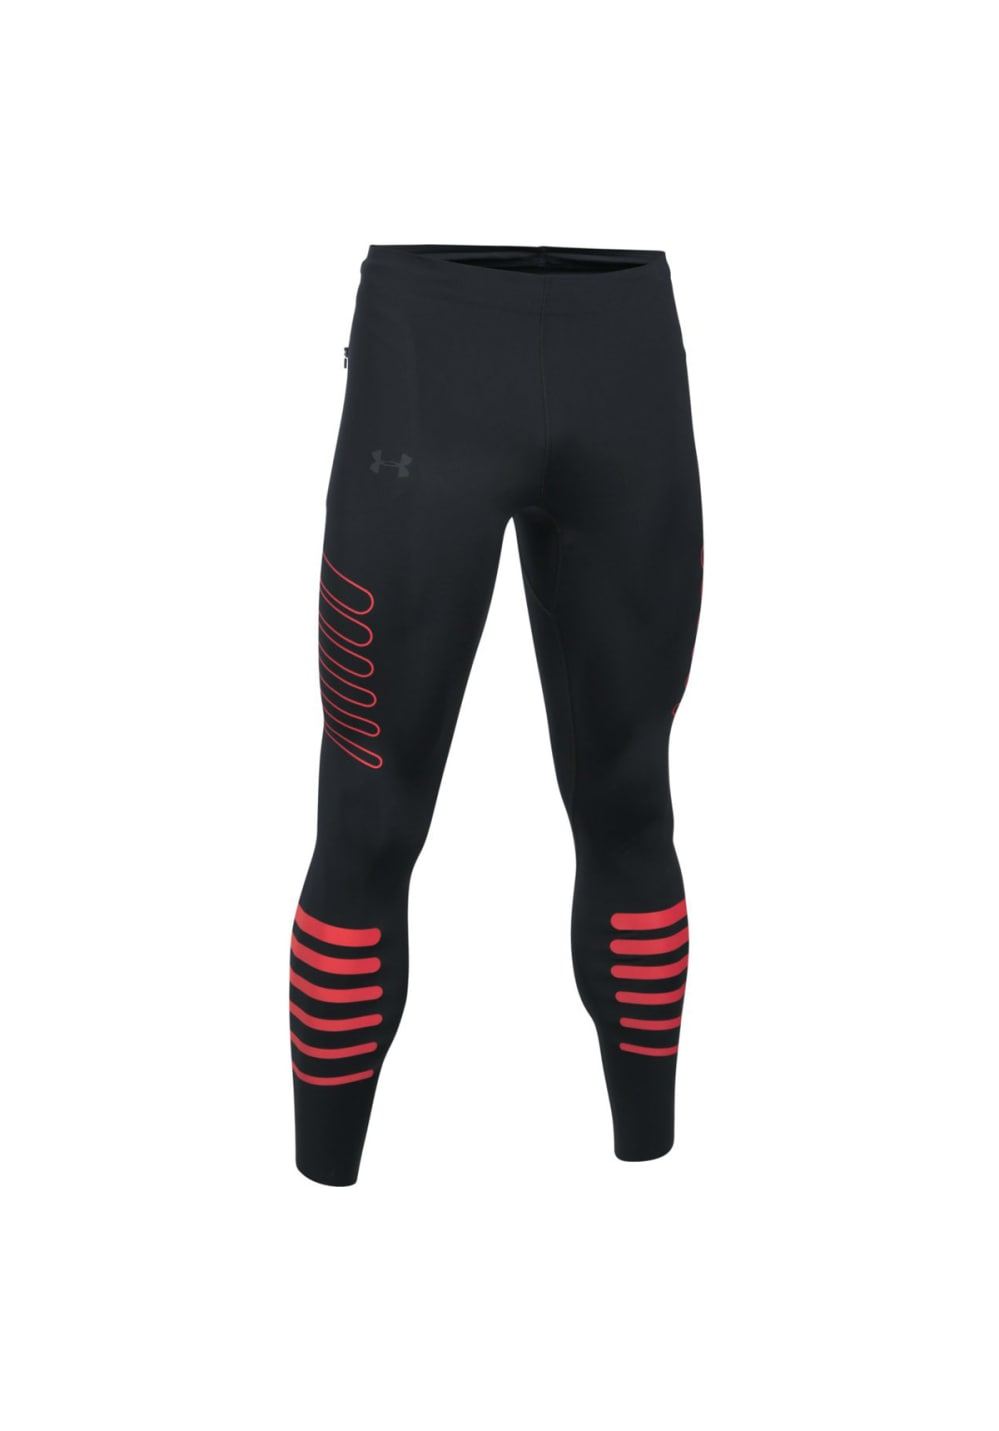 5612ac8db Under Armour Storm Reflective Tight - Running trousers for Men - Black